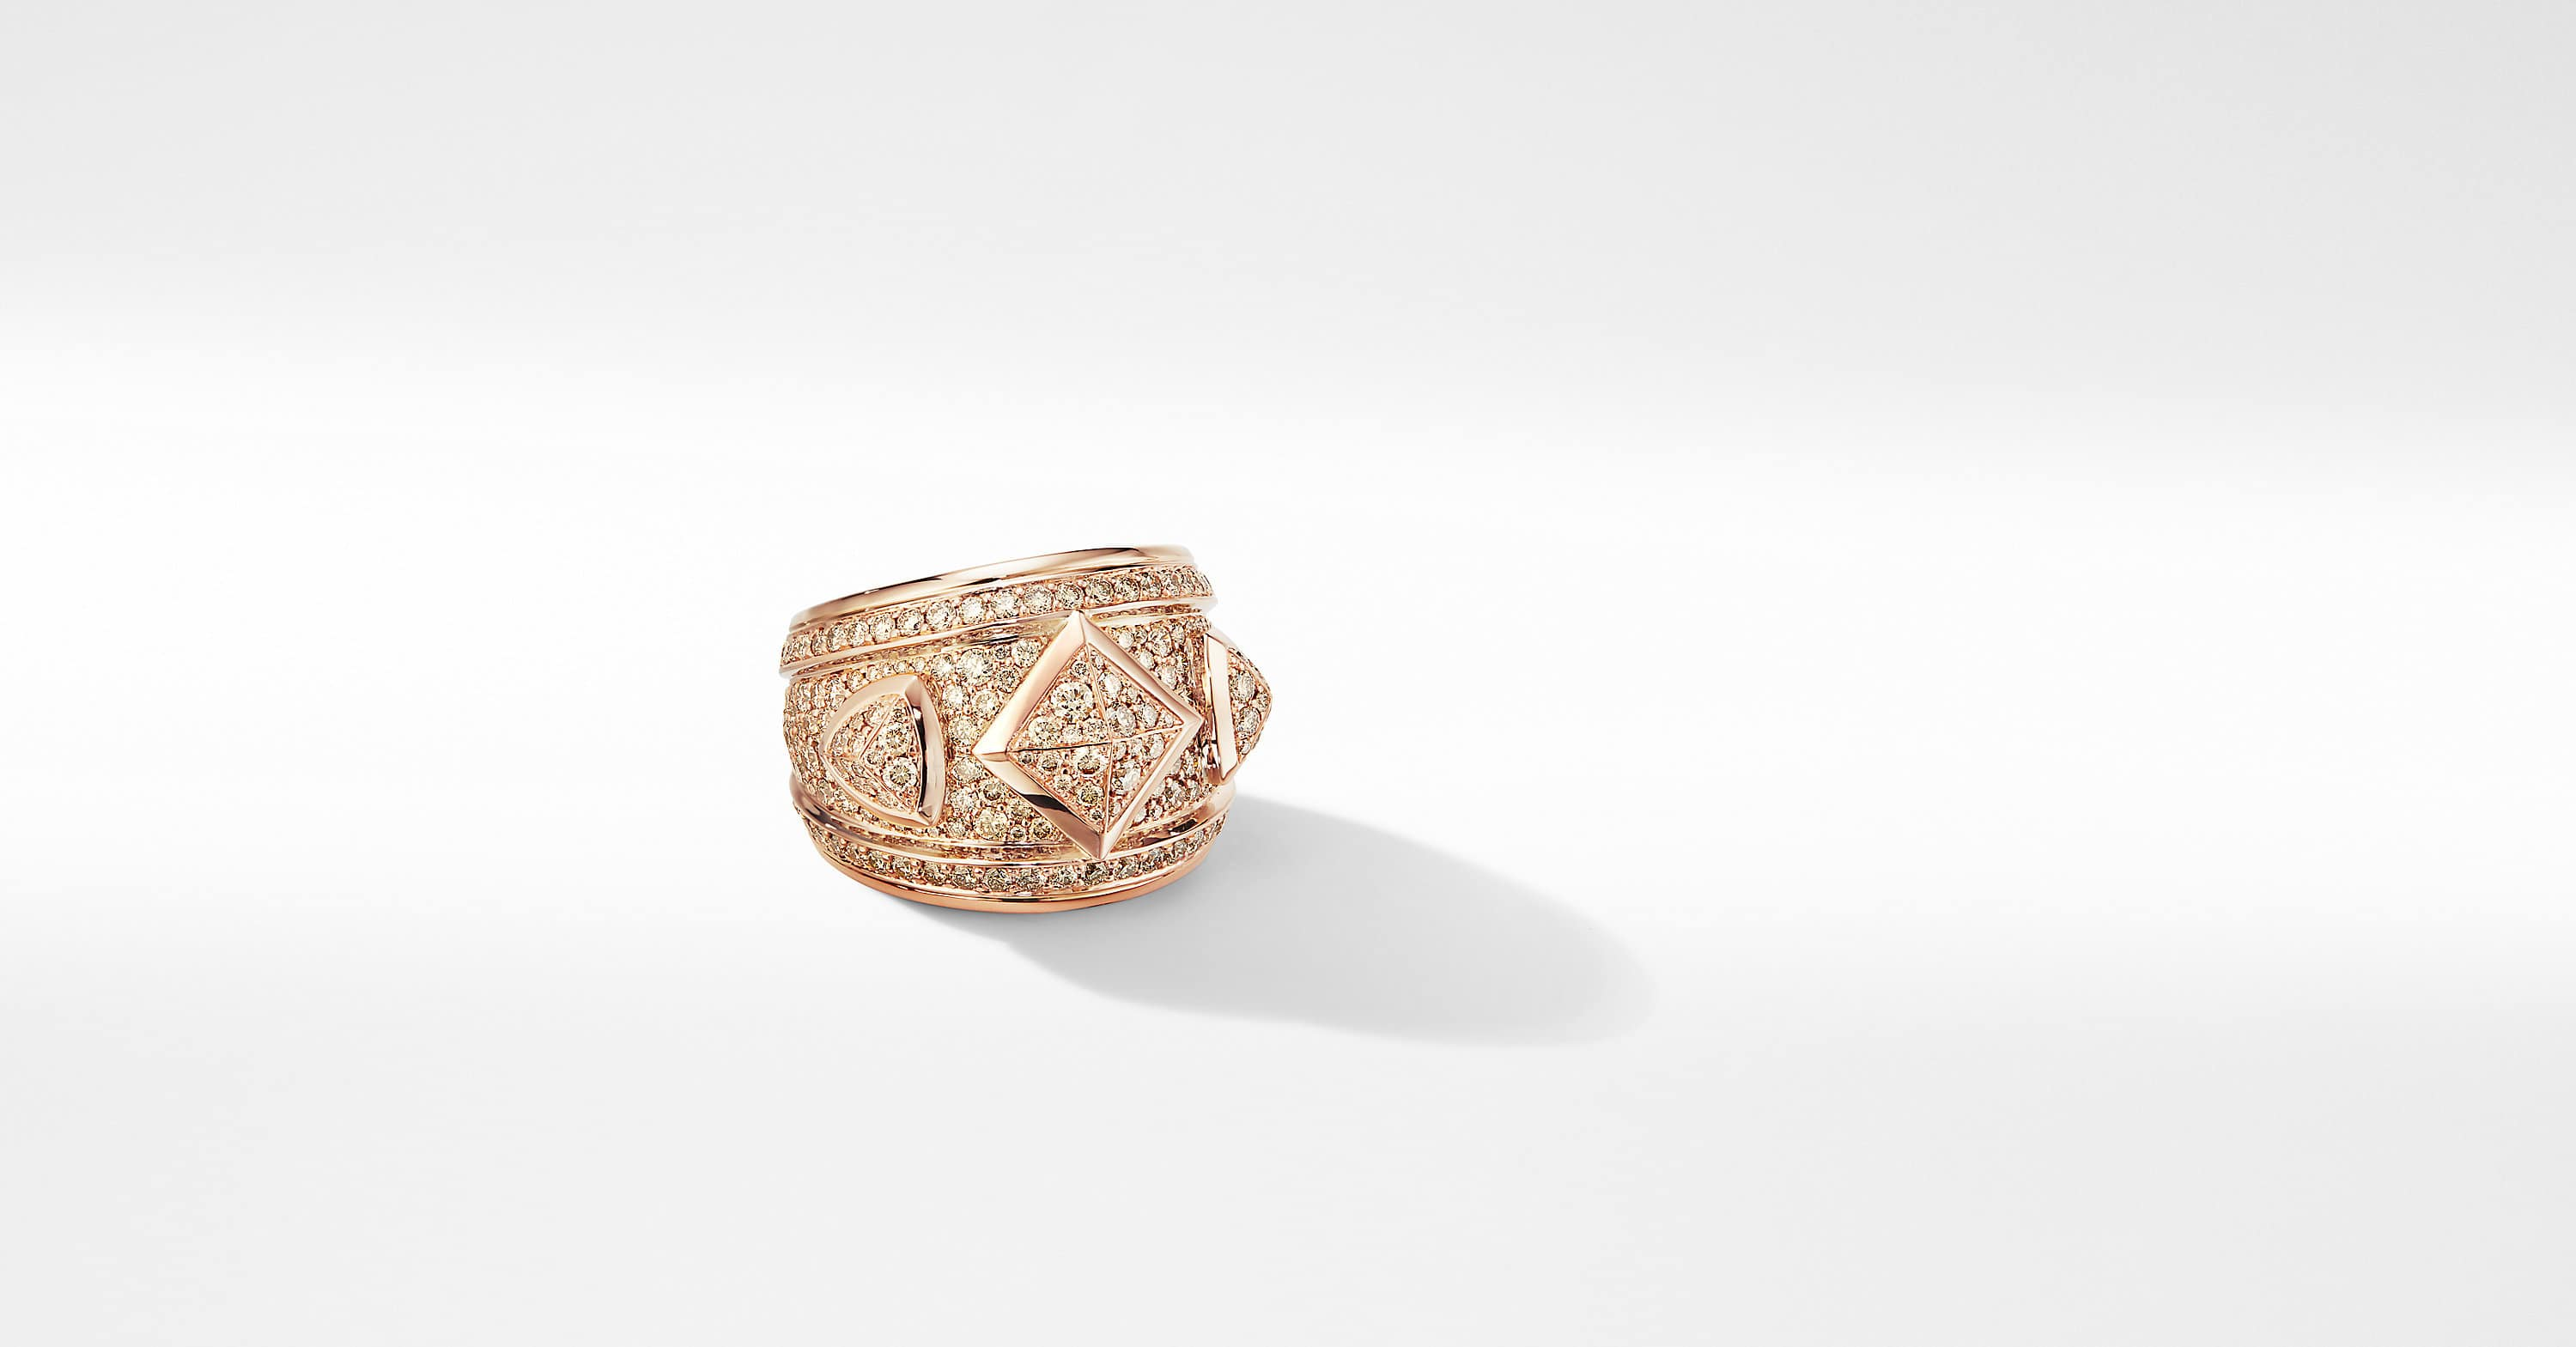 Renaissance Ring in 18K Rose Gold with Full Pavé